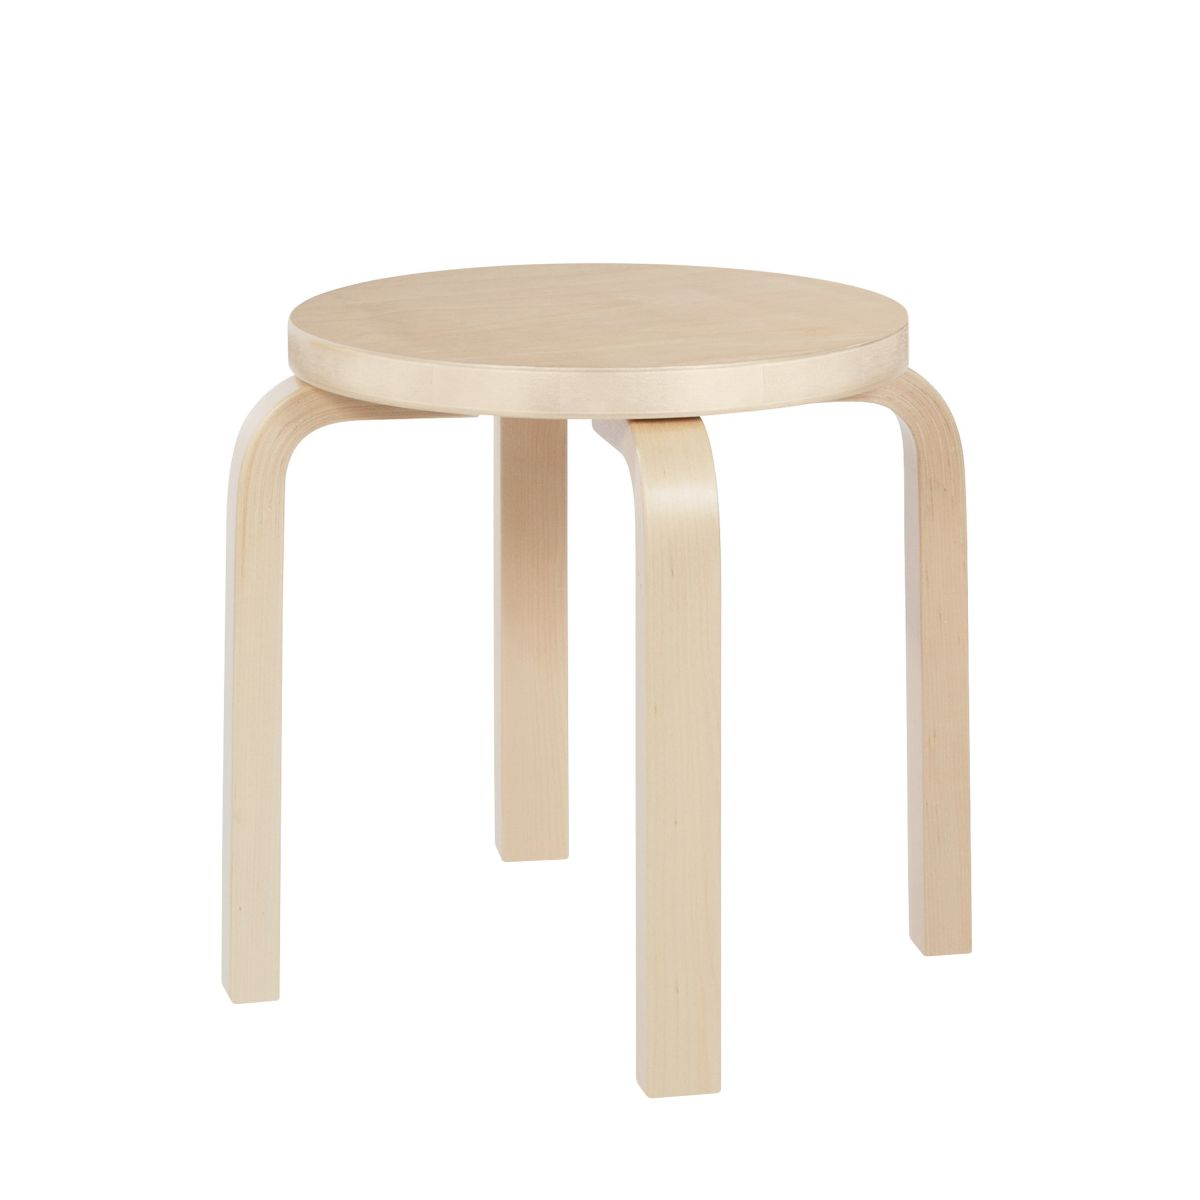 Childrens-Stool-Ne60-Natural-Lacquered-Birch